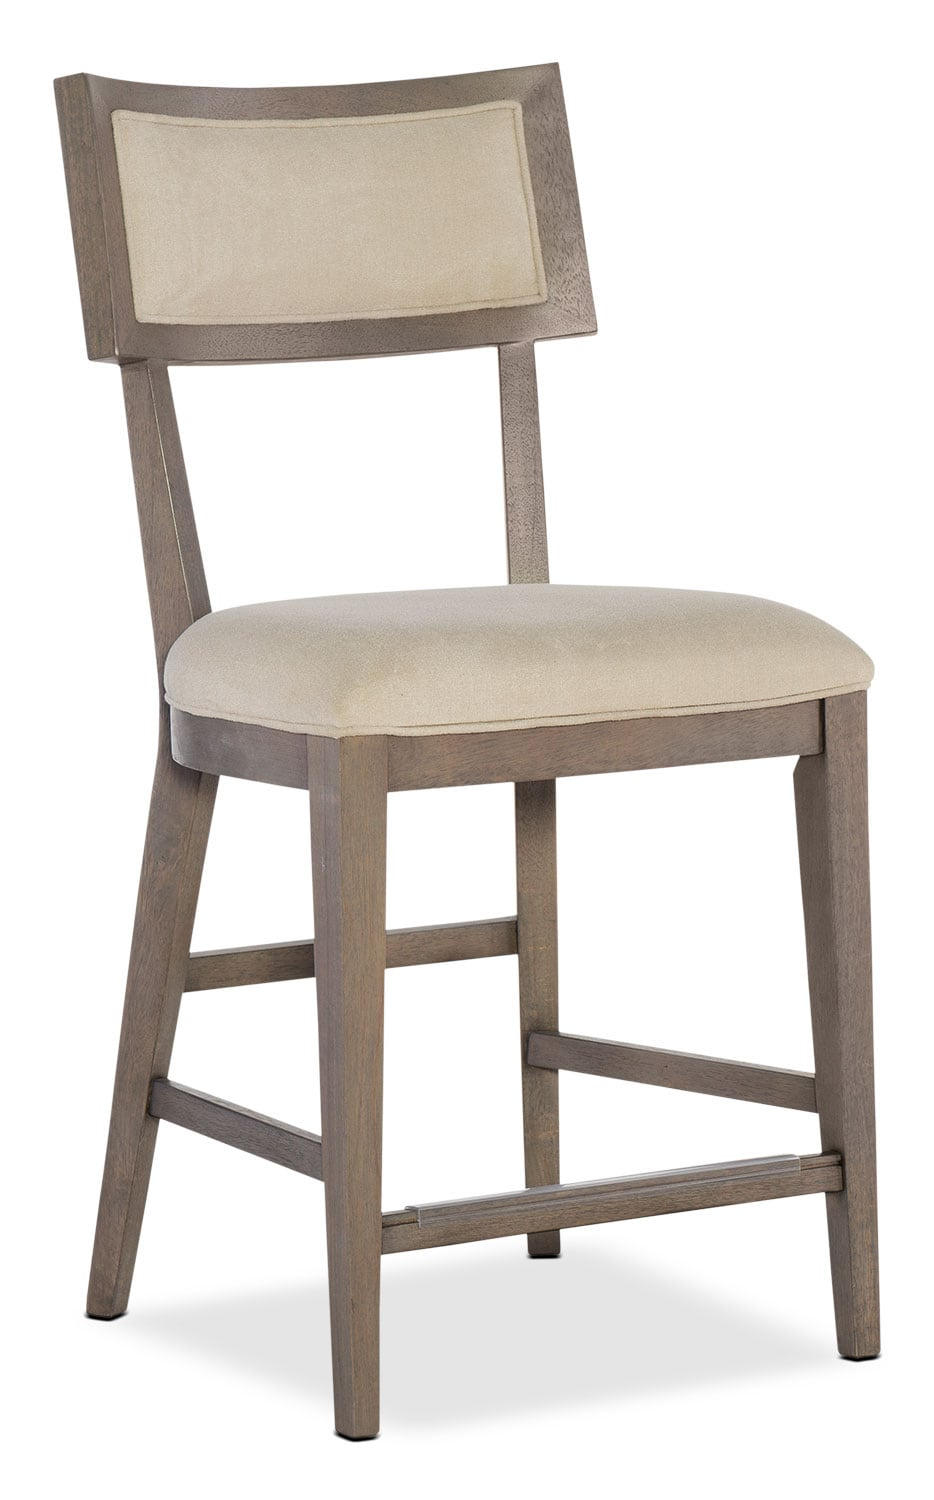 Rachael Ray Highline Kitchen Stool - Greige